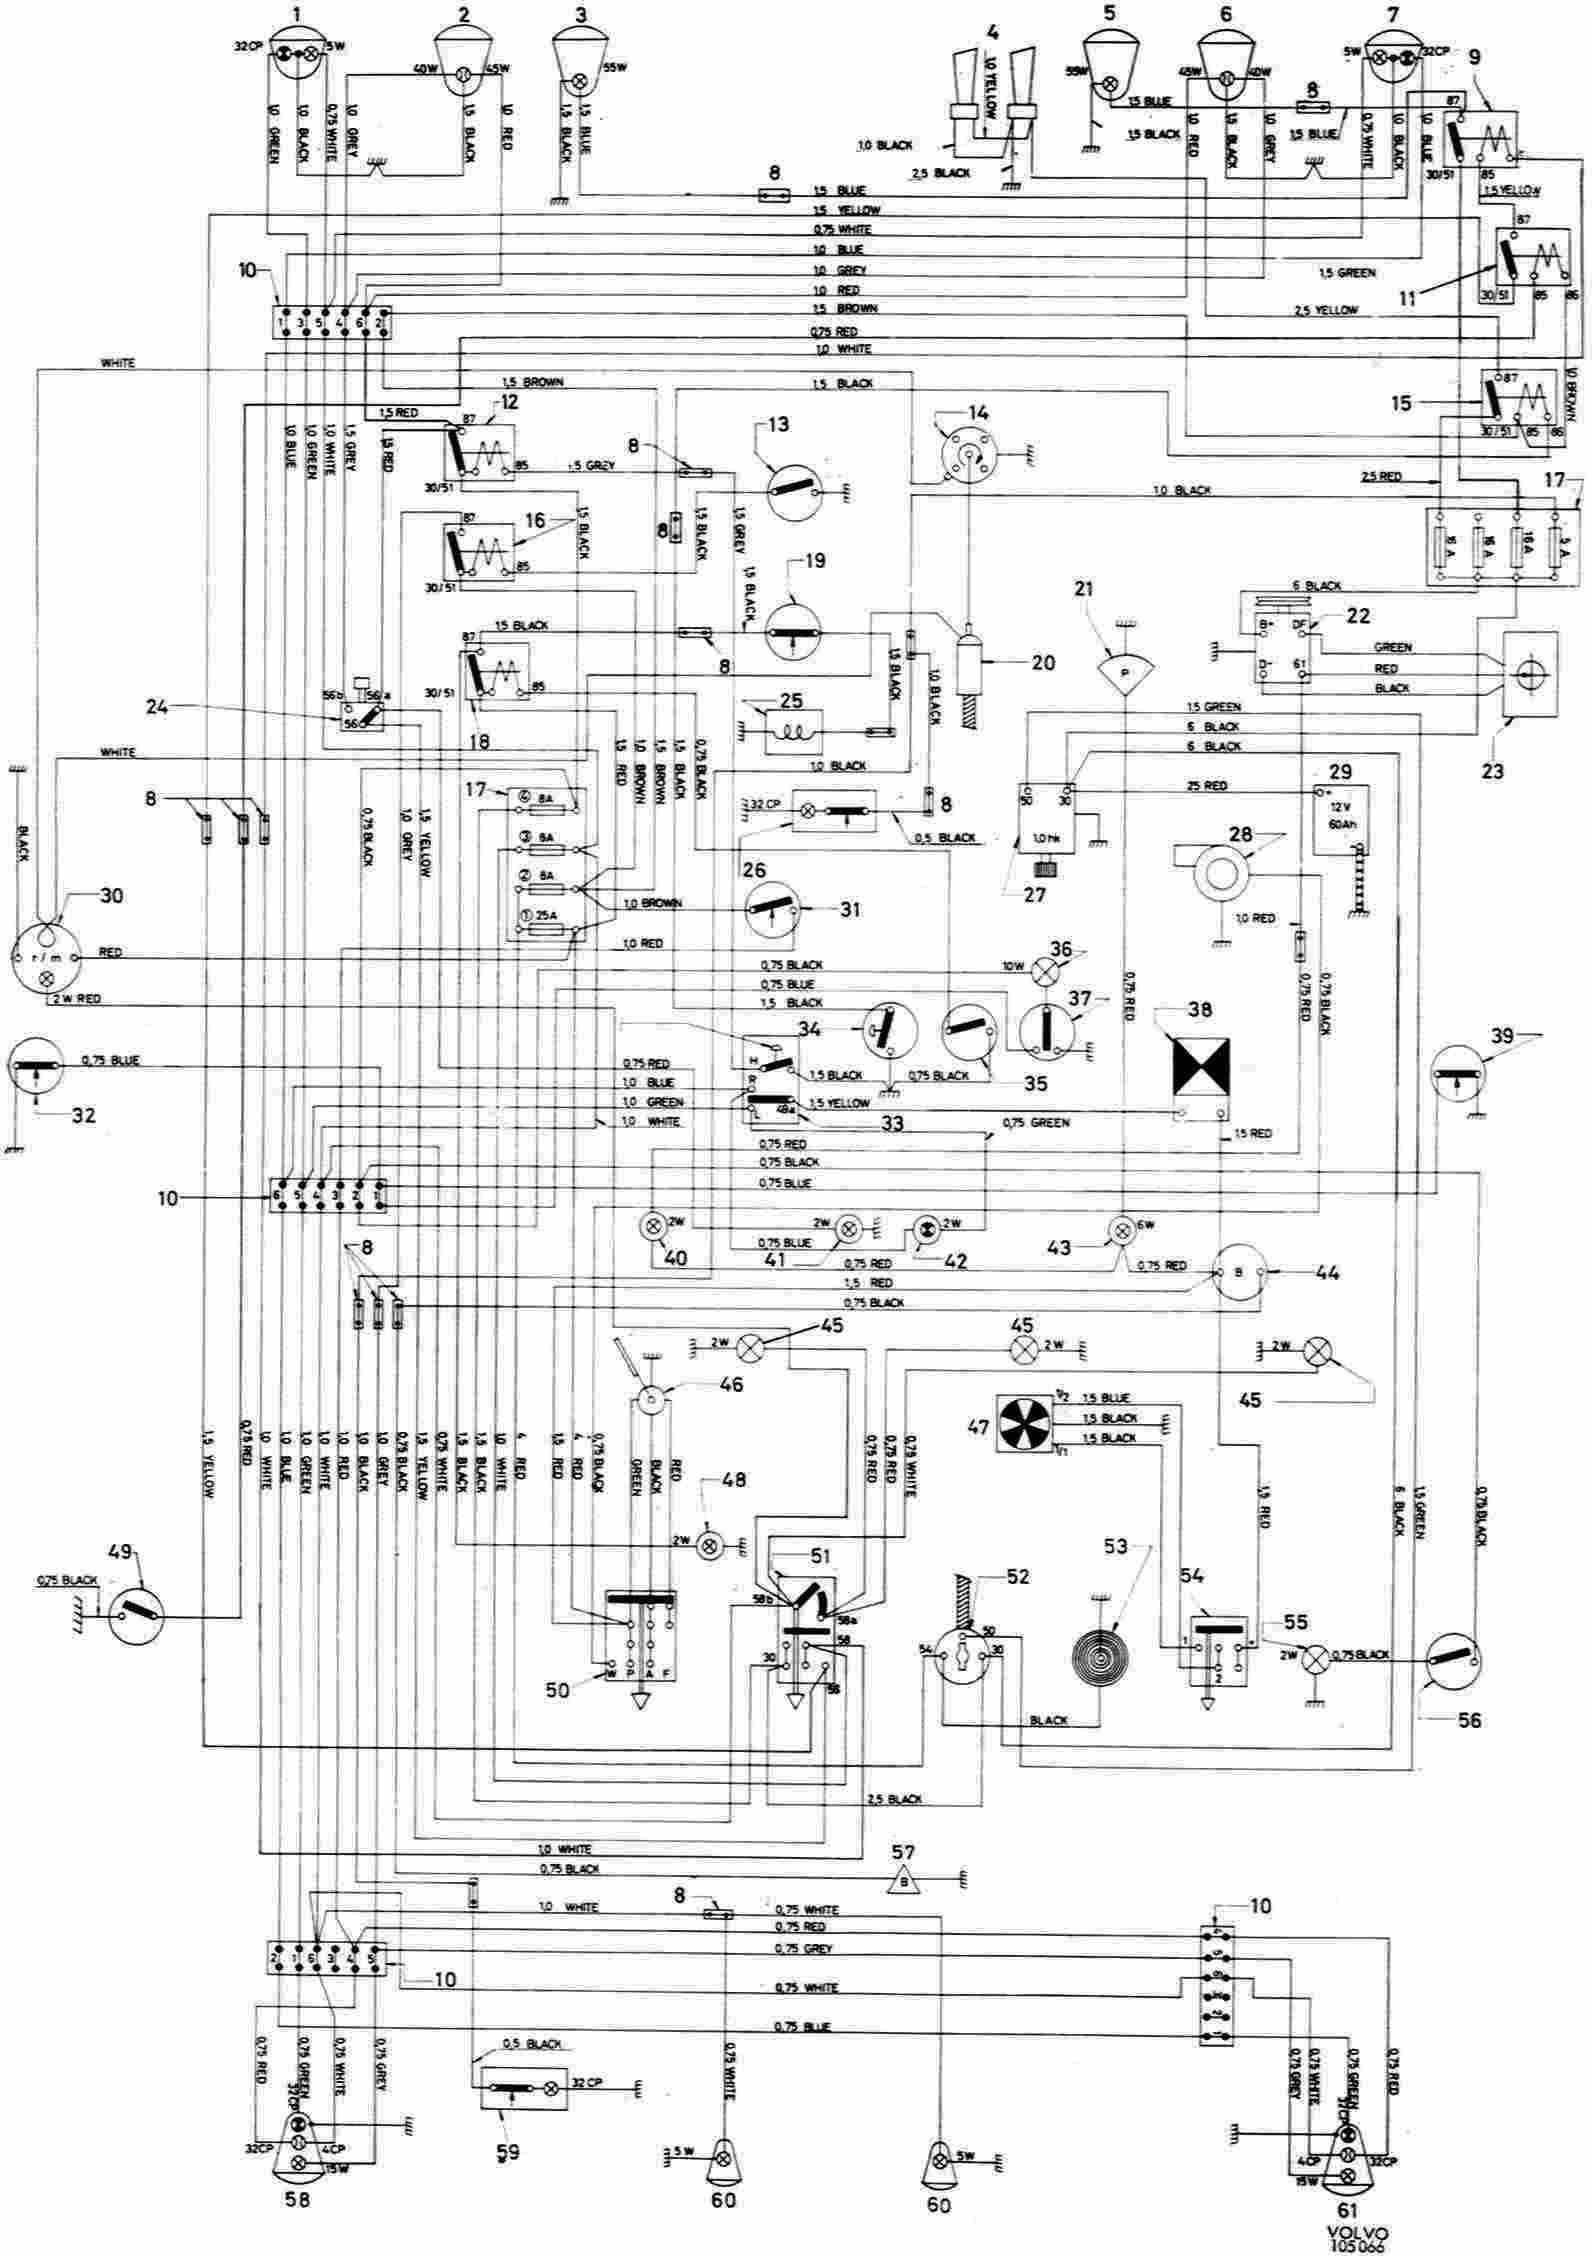 he_7483] volvo 240 stereo wiring diagram in addition series ... headlight wiring diagram 2001 volvo s60  itive rect mohammedshrine librar wiring 101